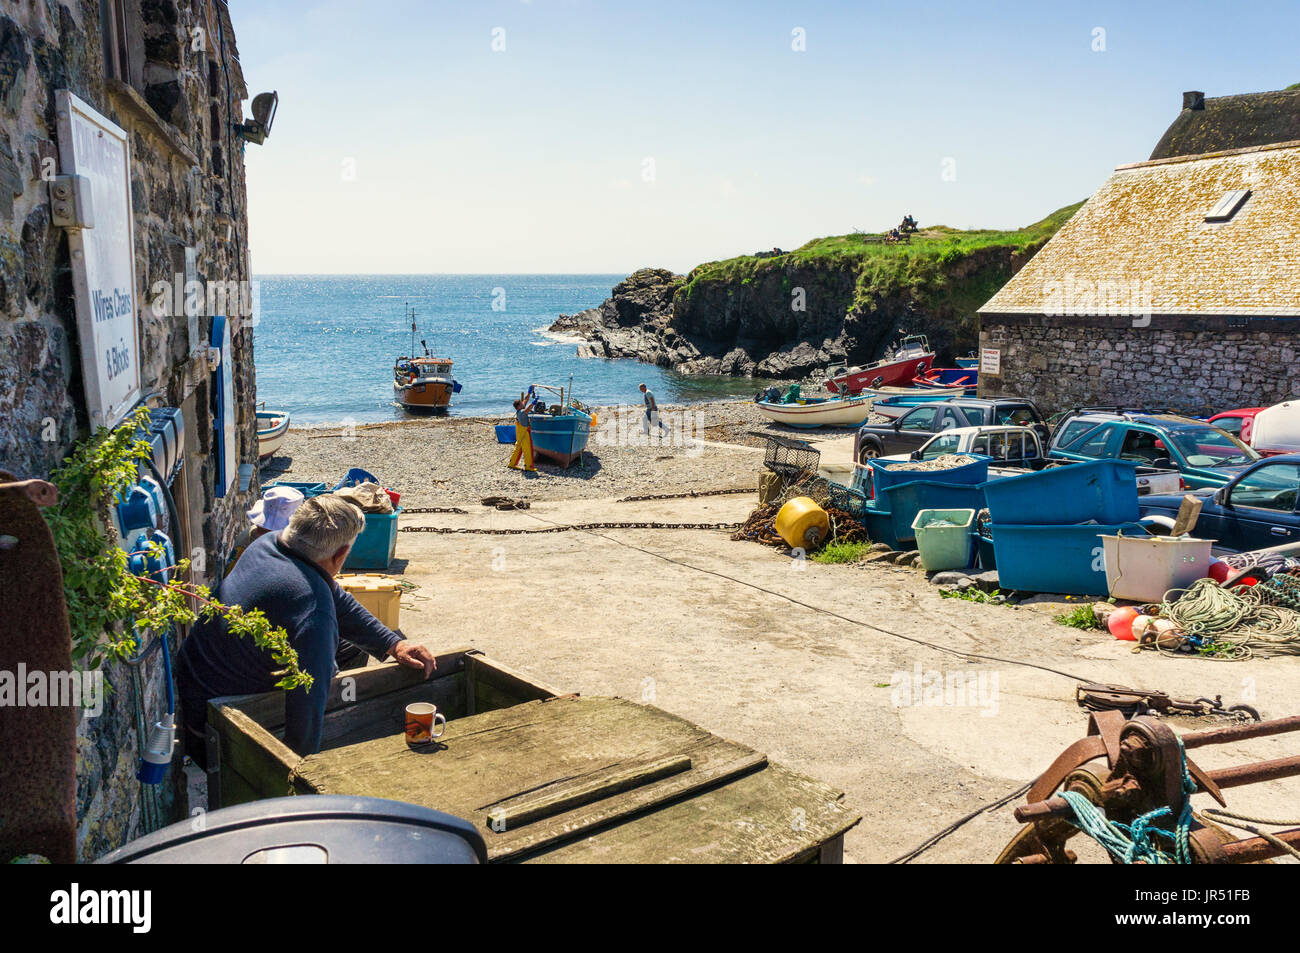 Fishing boats and fishermen at Cadgwith Cove, Lizard Peninsula, Cornwall, UK in summer landing a catch - Stock Image